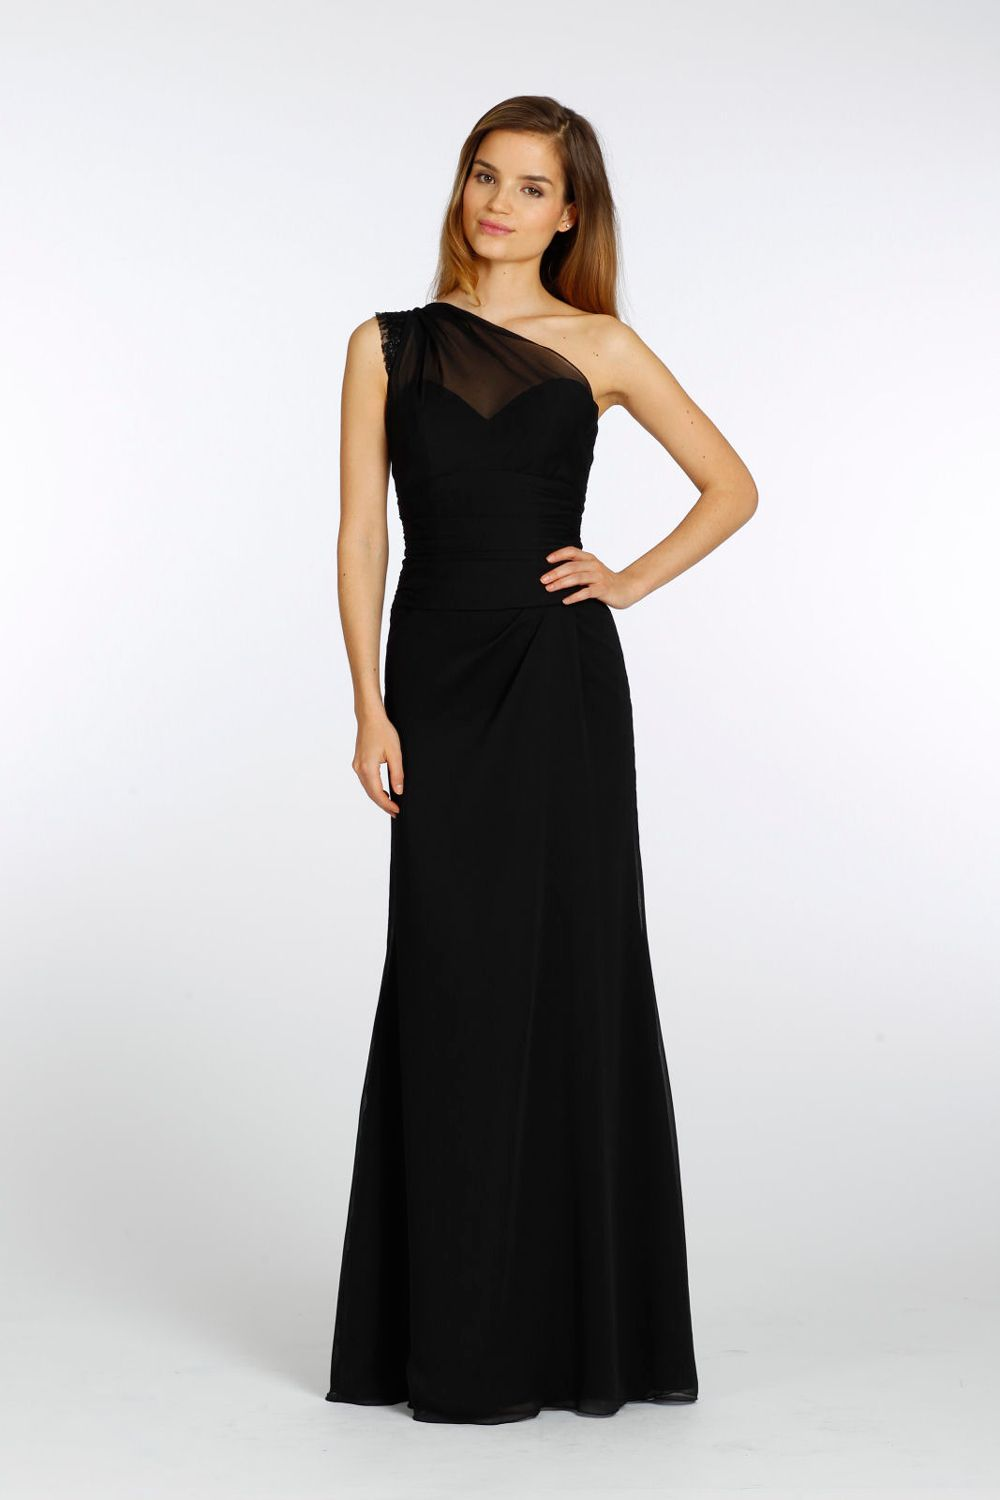 Our Favourite One Shoulder Bridesmaid Dresses Black Bridesmaid Dresses One Shoulder Bridesmaid Dresses Chiffon Bridesmaid